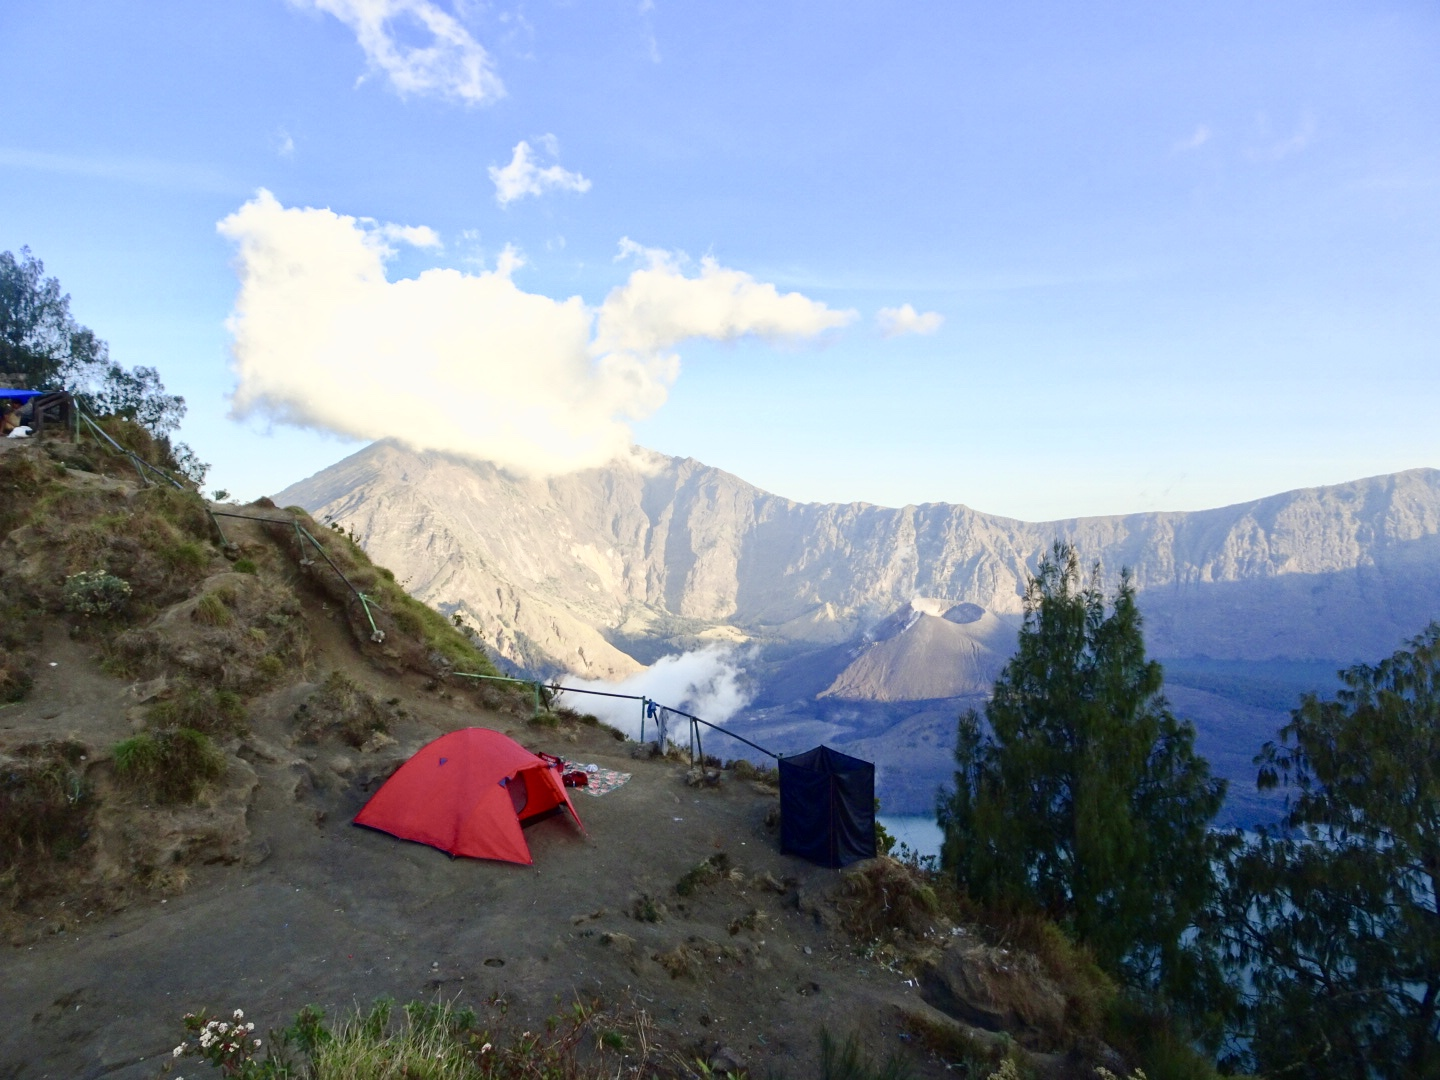 Lovely campsite setup on Mt. Rinjani